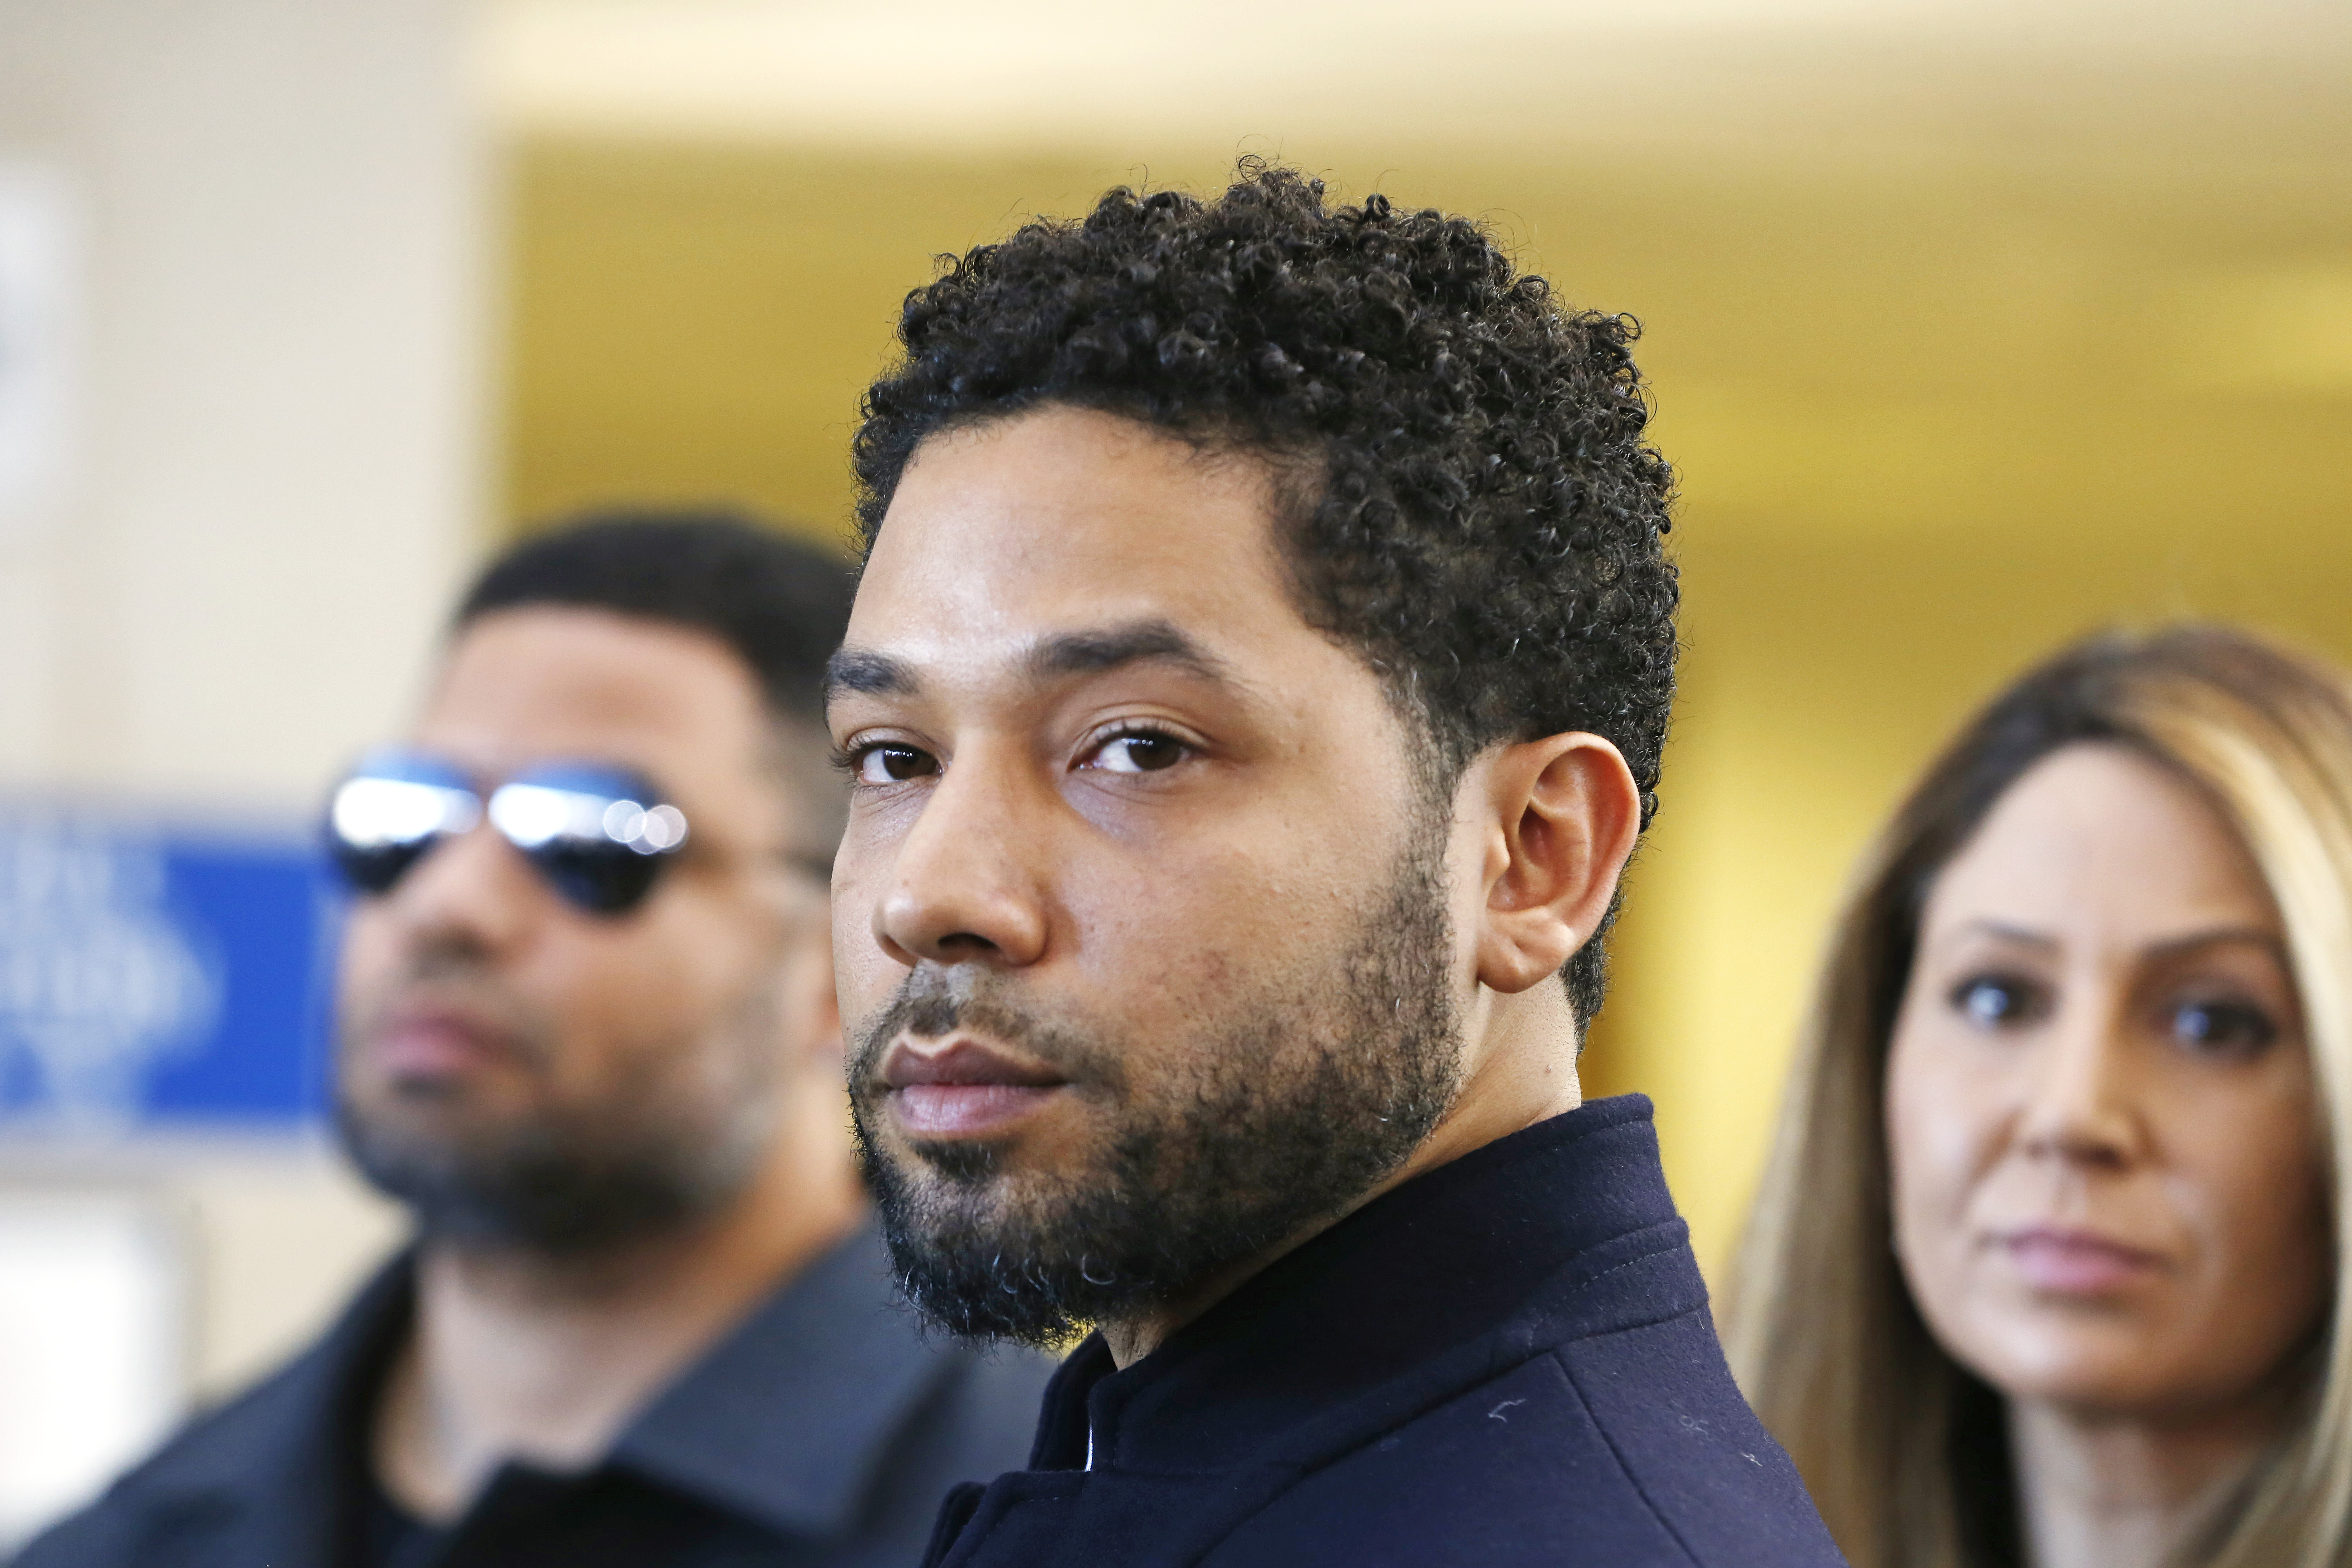 City Of Chicago Announces It's Suing Jussie Smollett For $130K For Attack Investigation